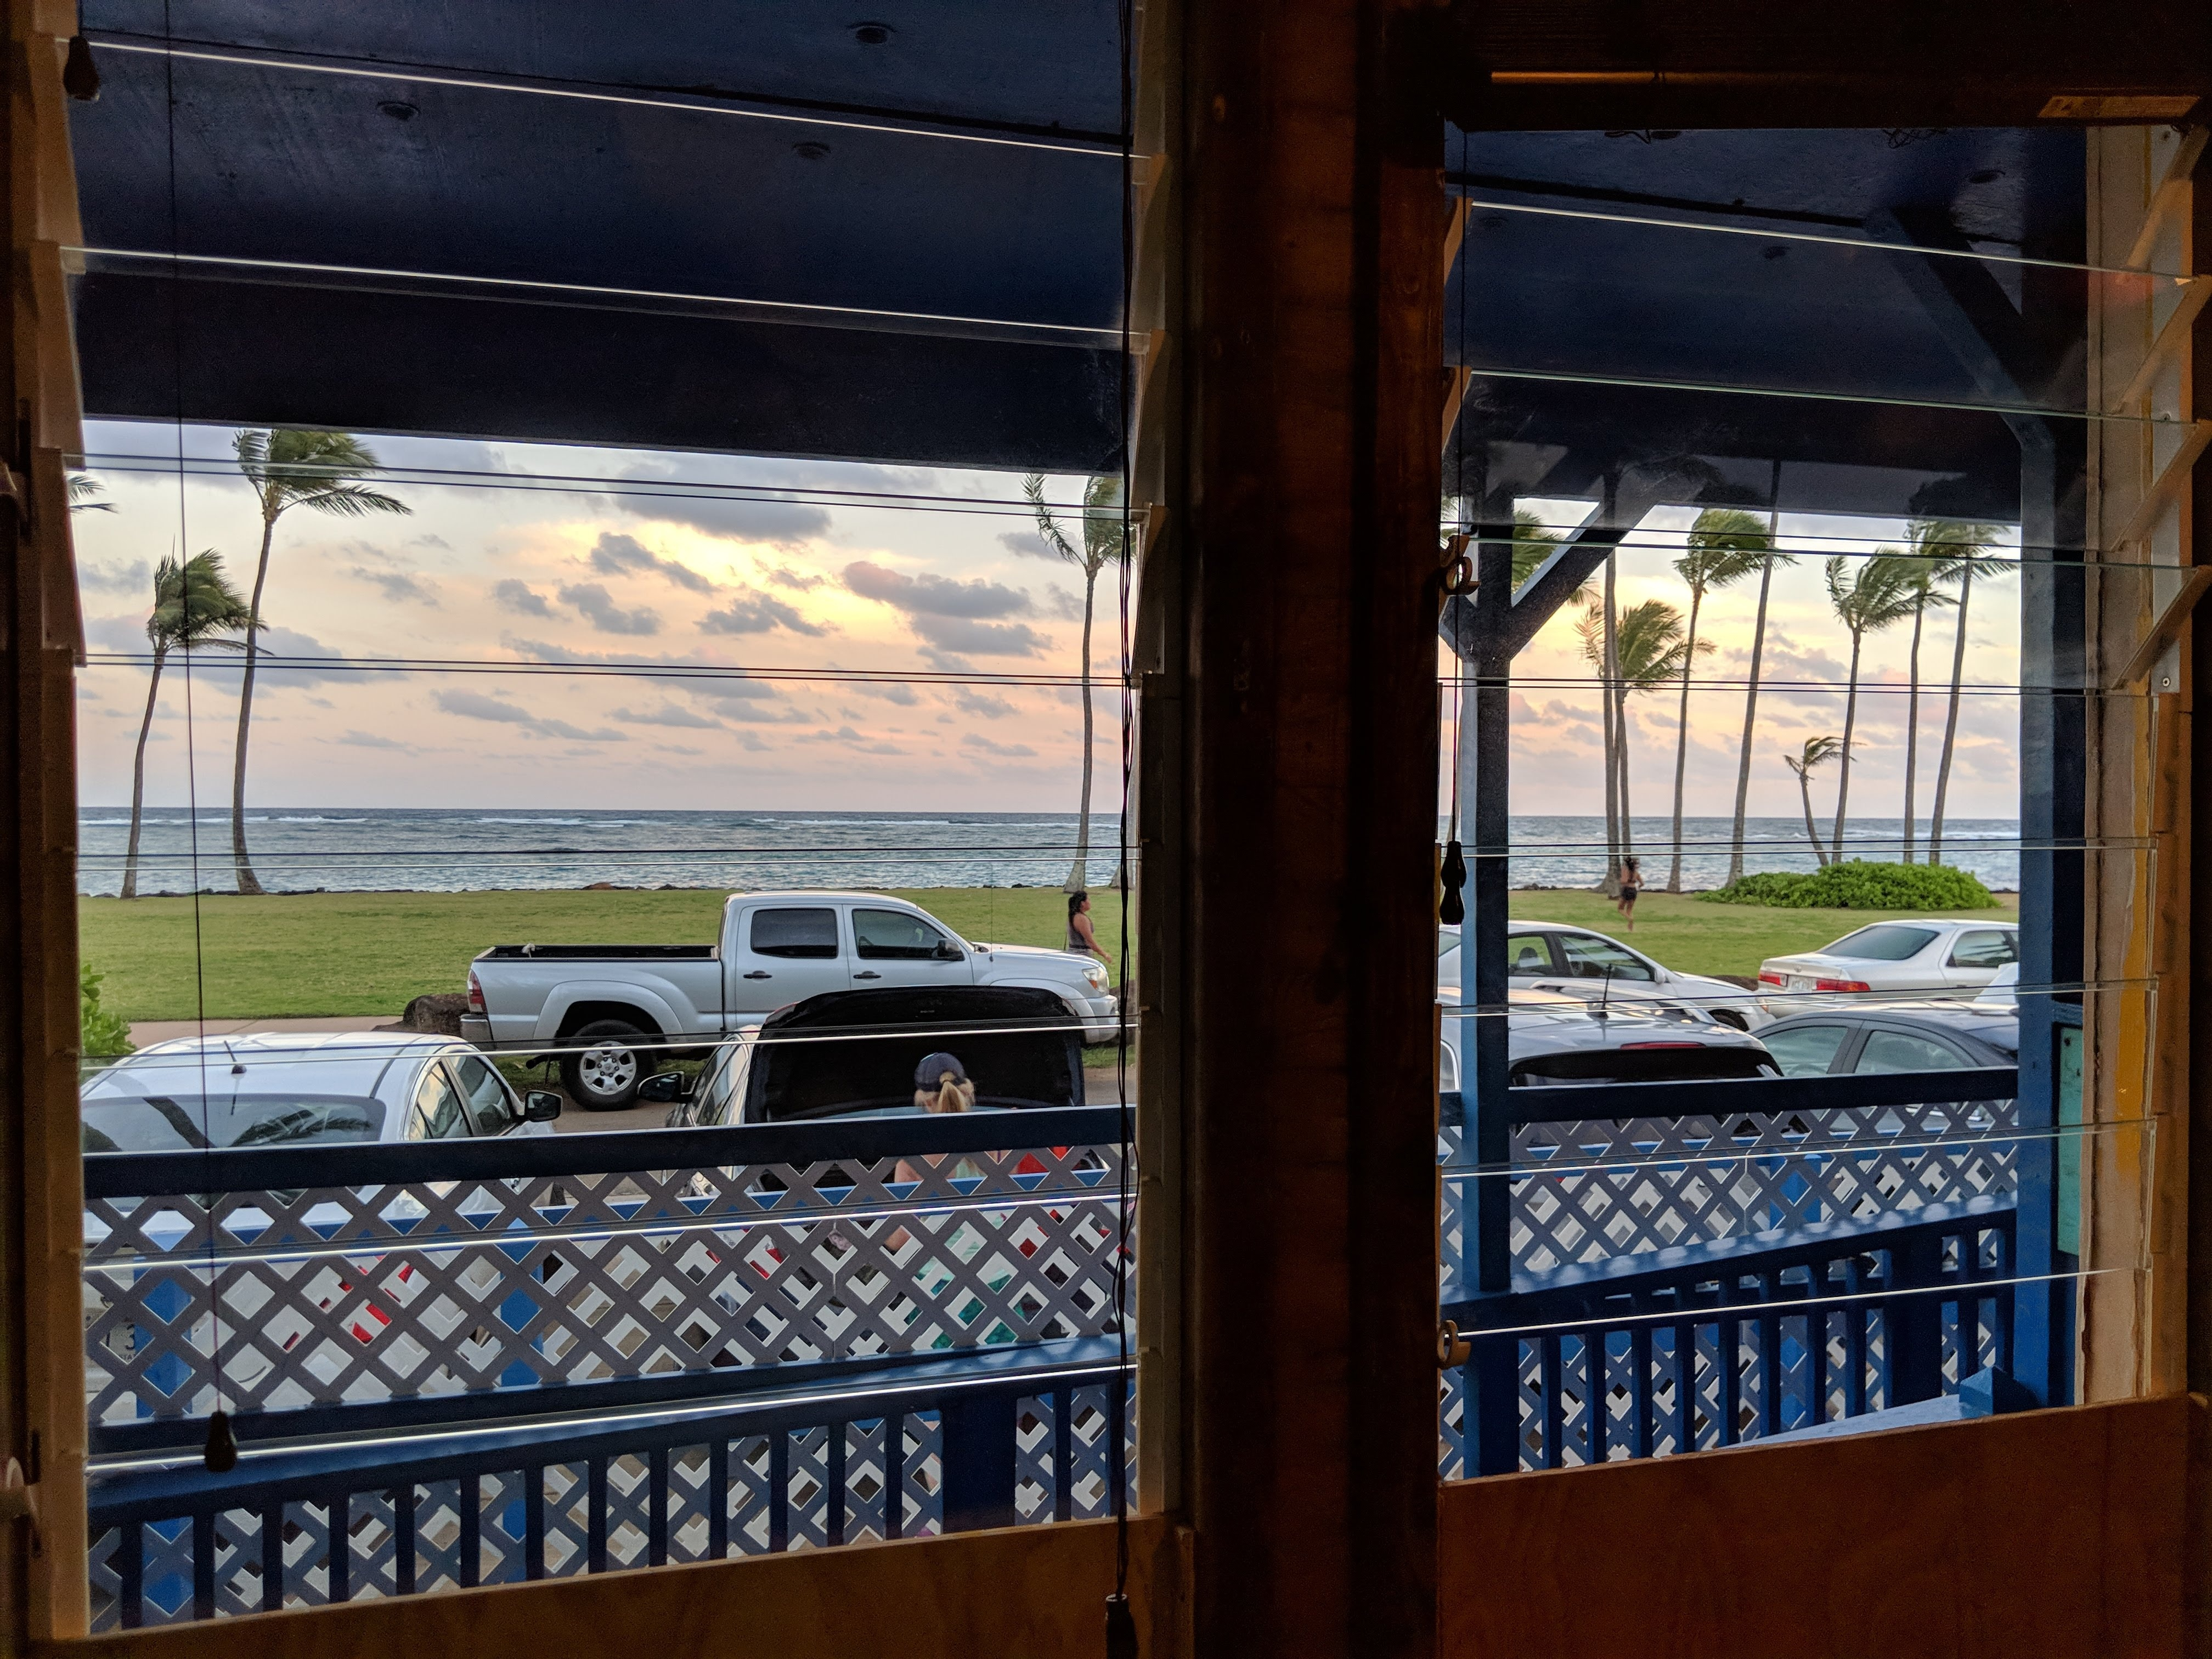 the-view-from-our-room-at-Kauai-Beach-hostel